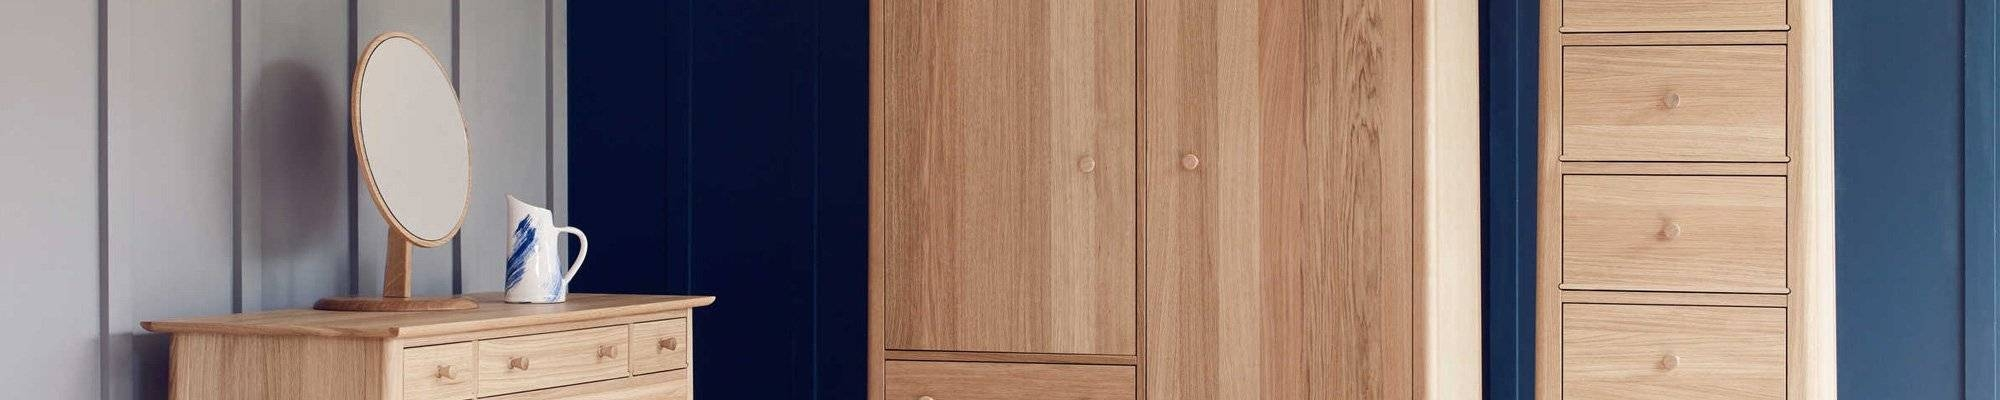 Dark Wood Wardrobes | Luxury Contemporary Wardrobes | Heal's intended for Dark Wood Wardrobes (Image 14 of 30)